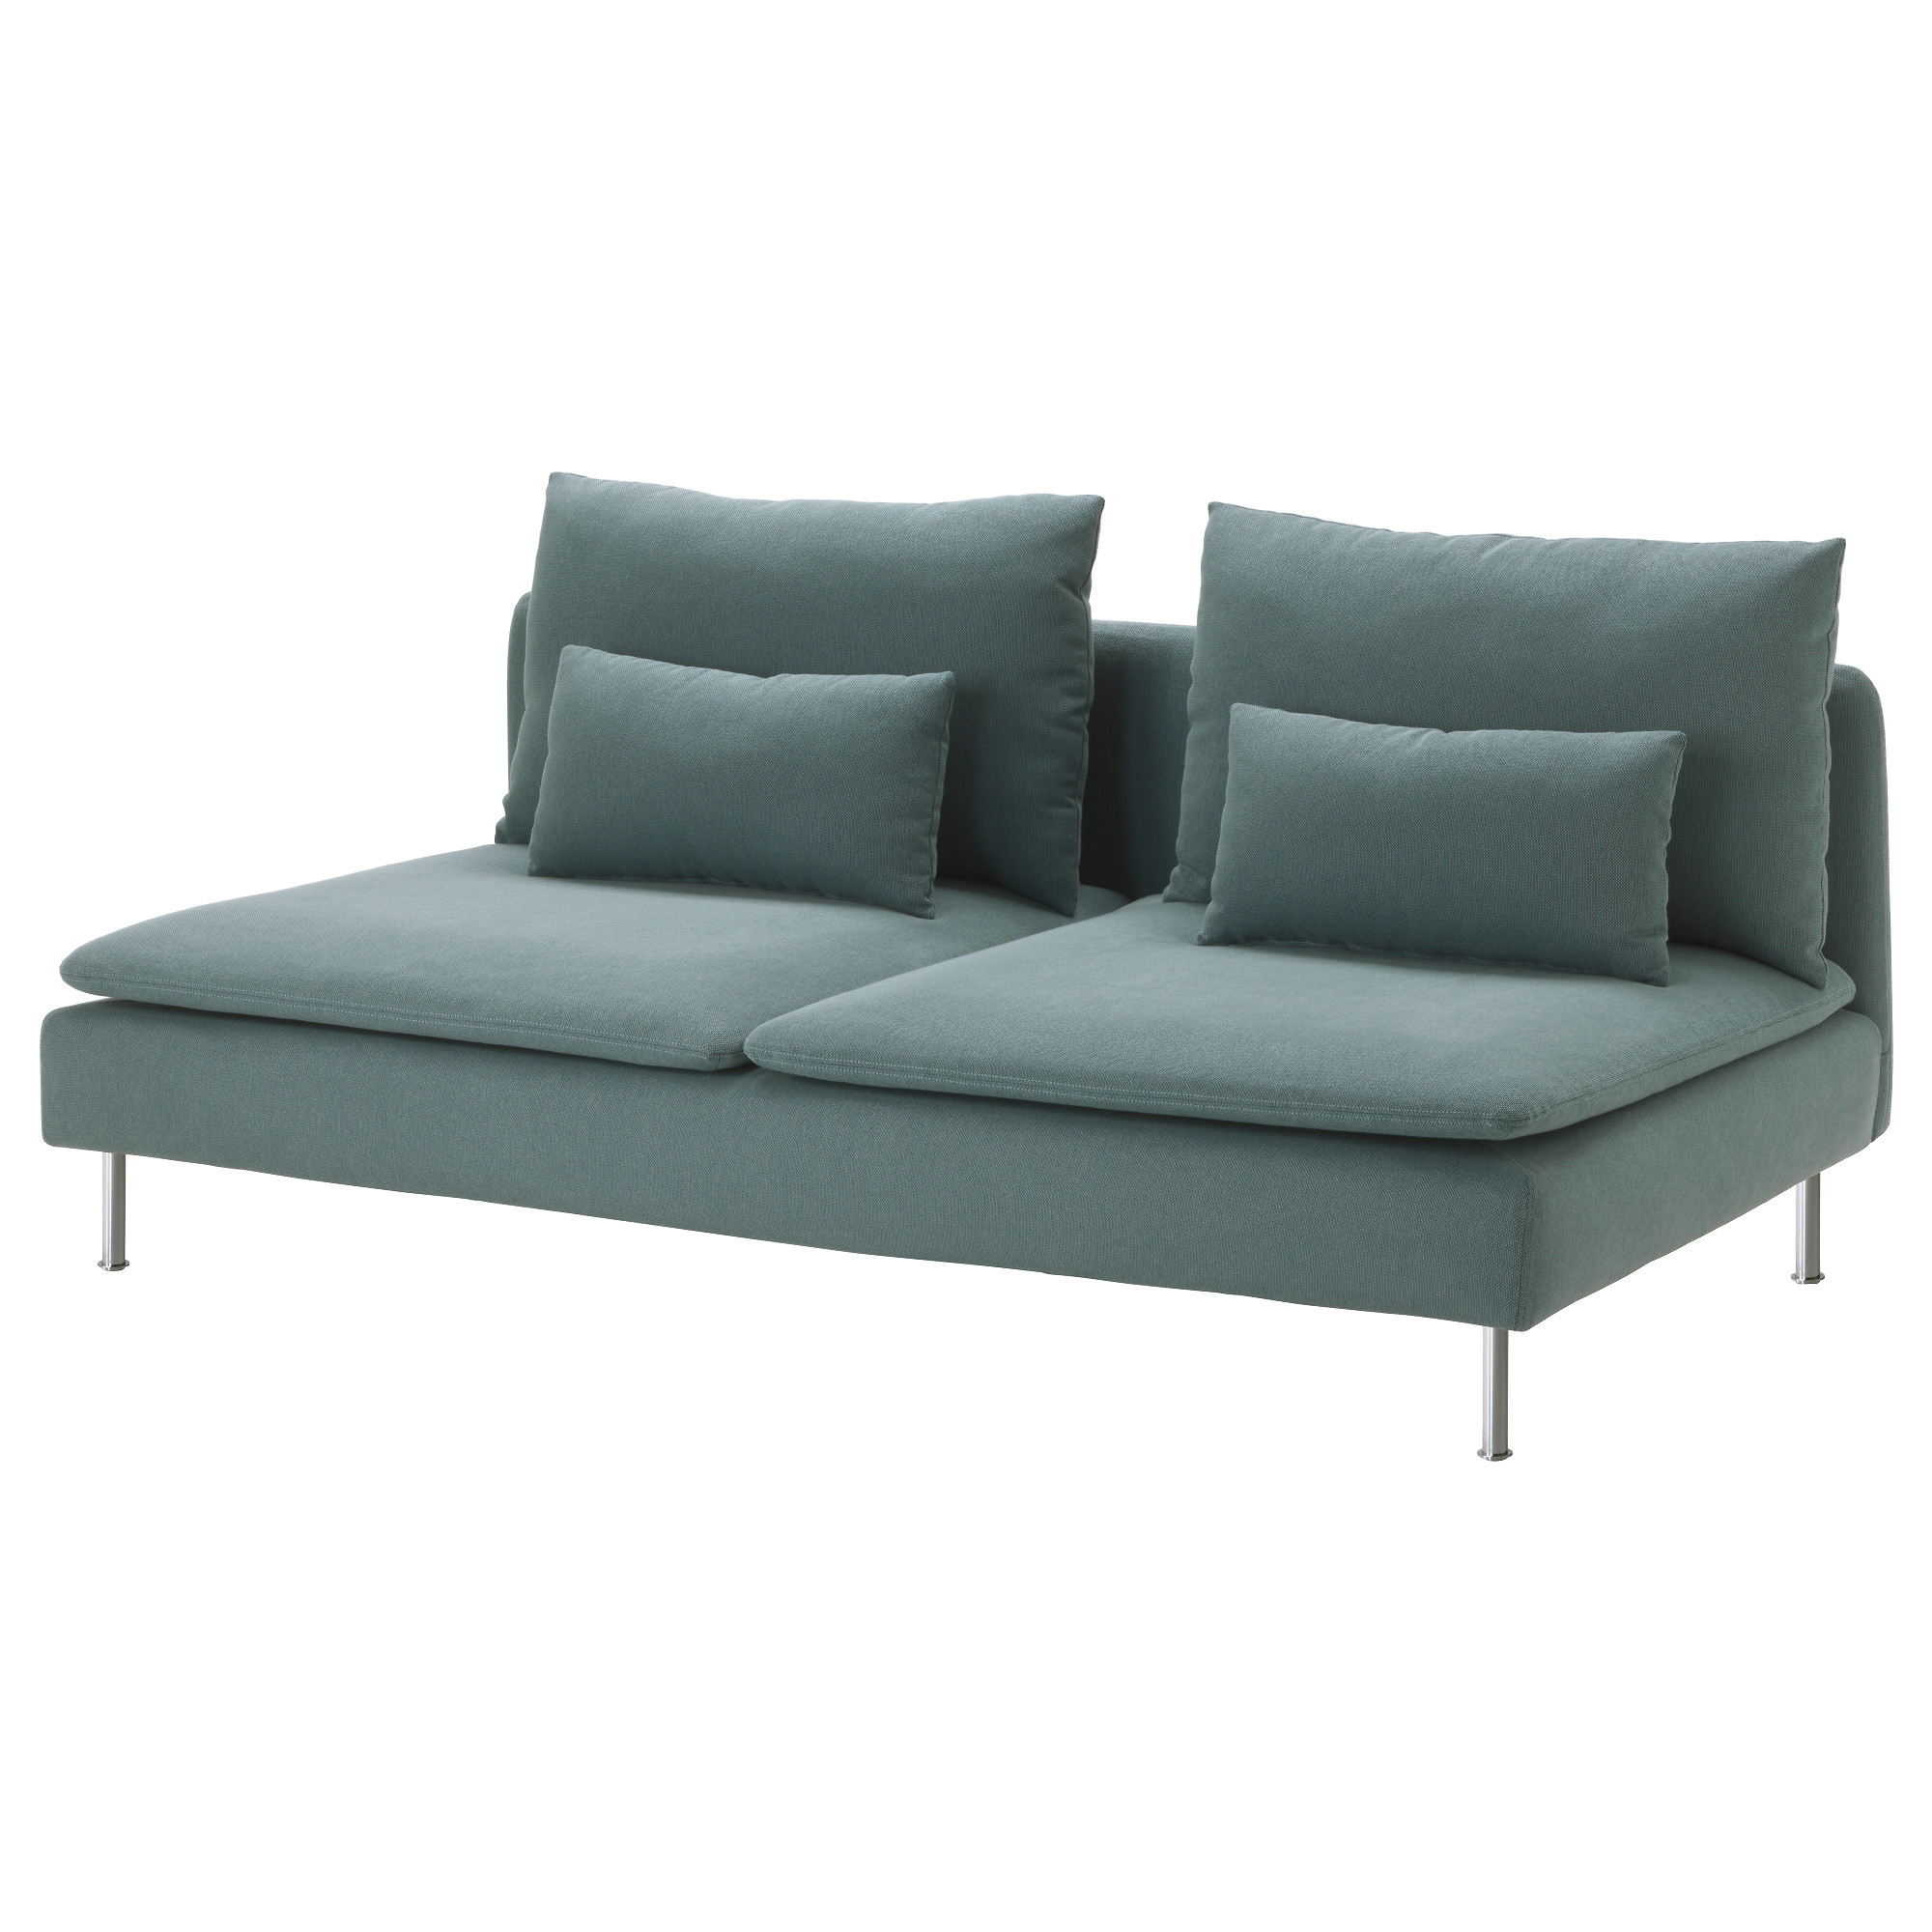 Delicieux SÖDERHAMN Sofa Section   Samsta Dark Gray   IKEA